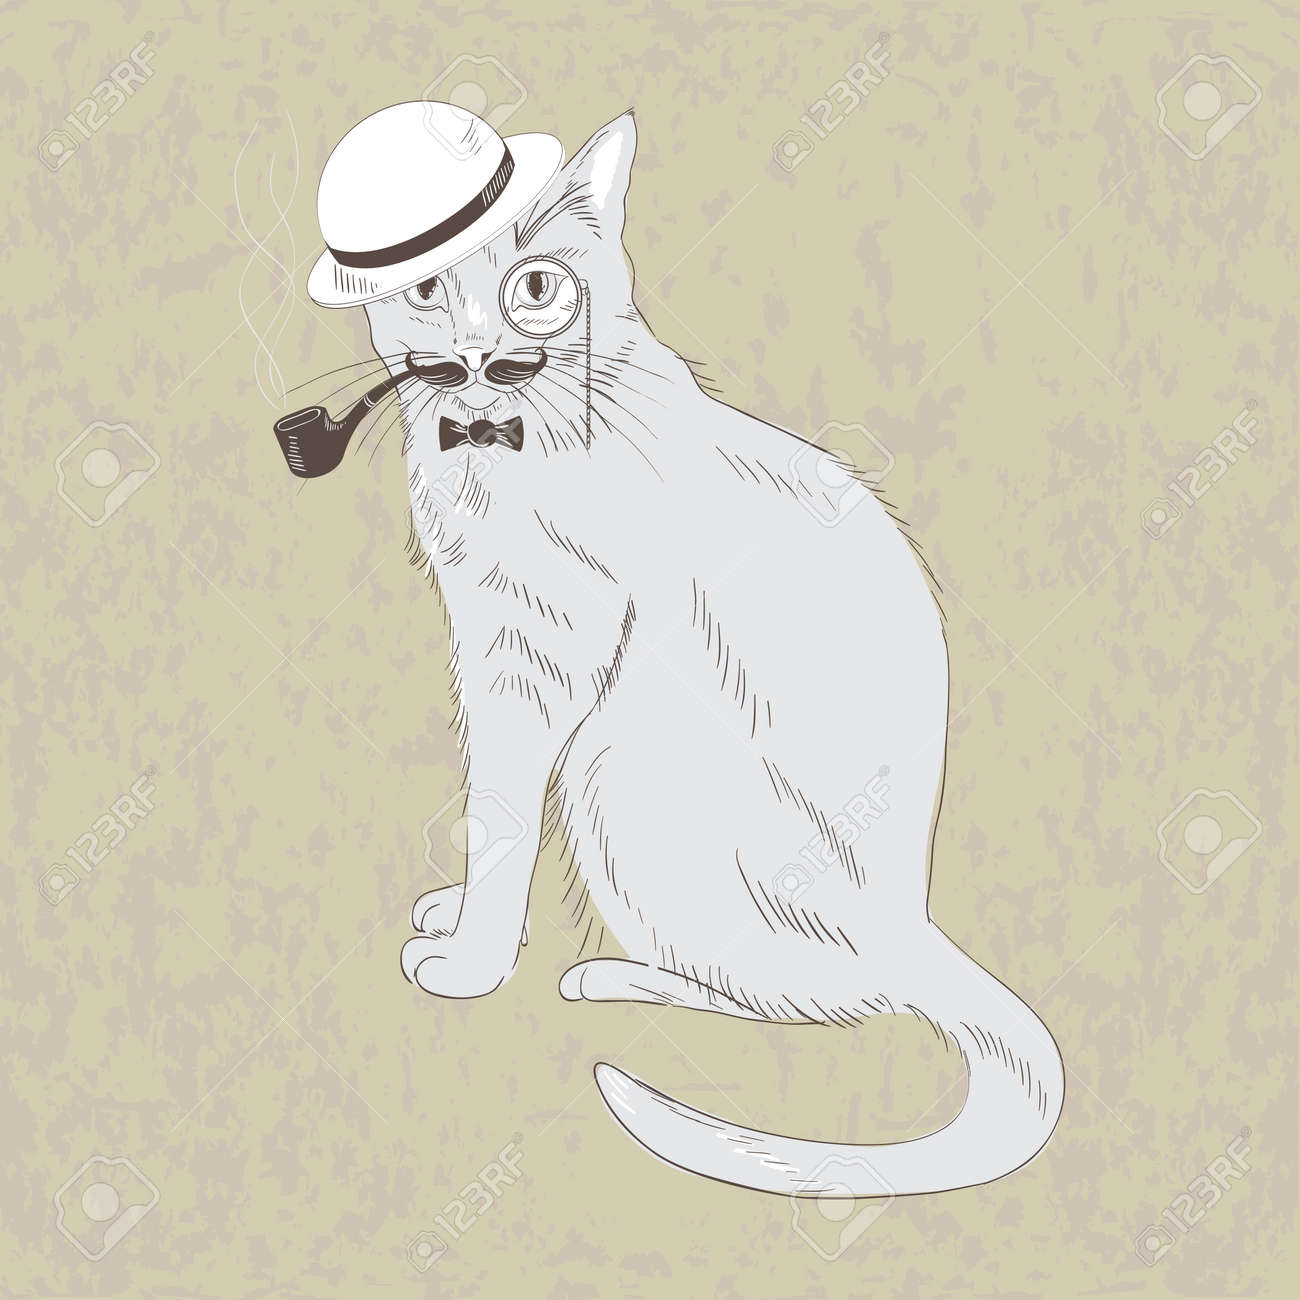 Cute Hand Drawn Gentleman Cat In Hat Bow Tie Monocle Vector Illustration Stock